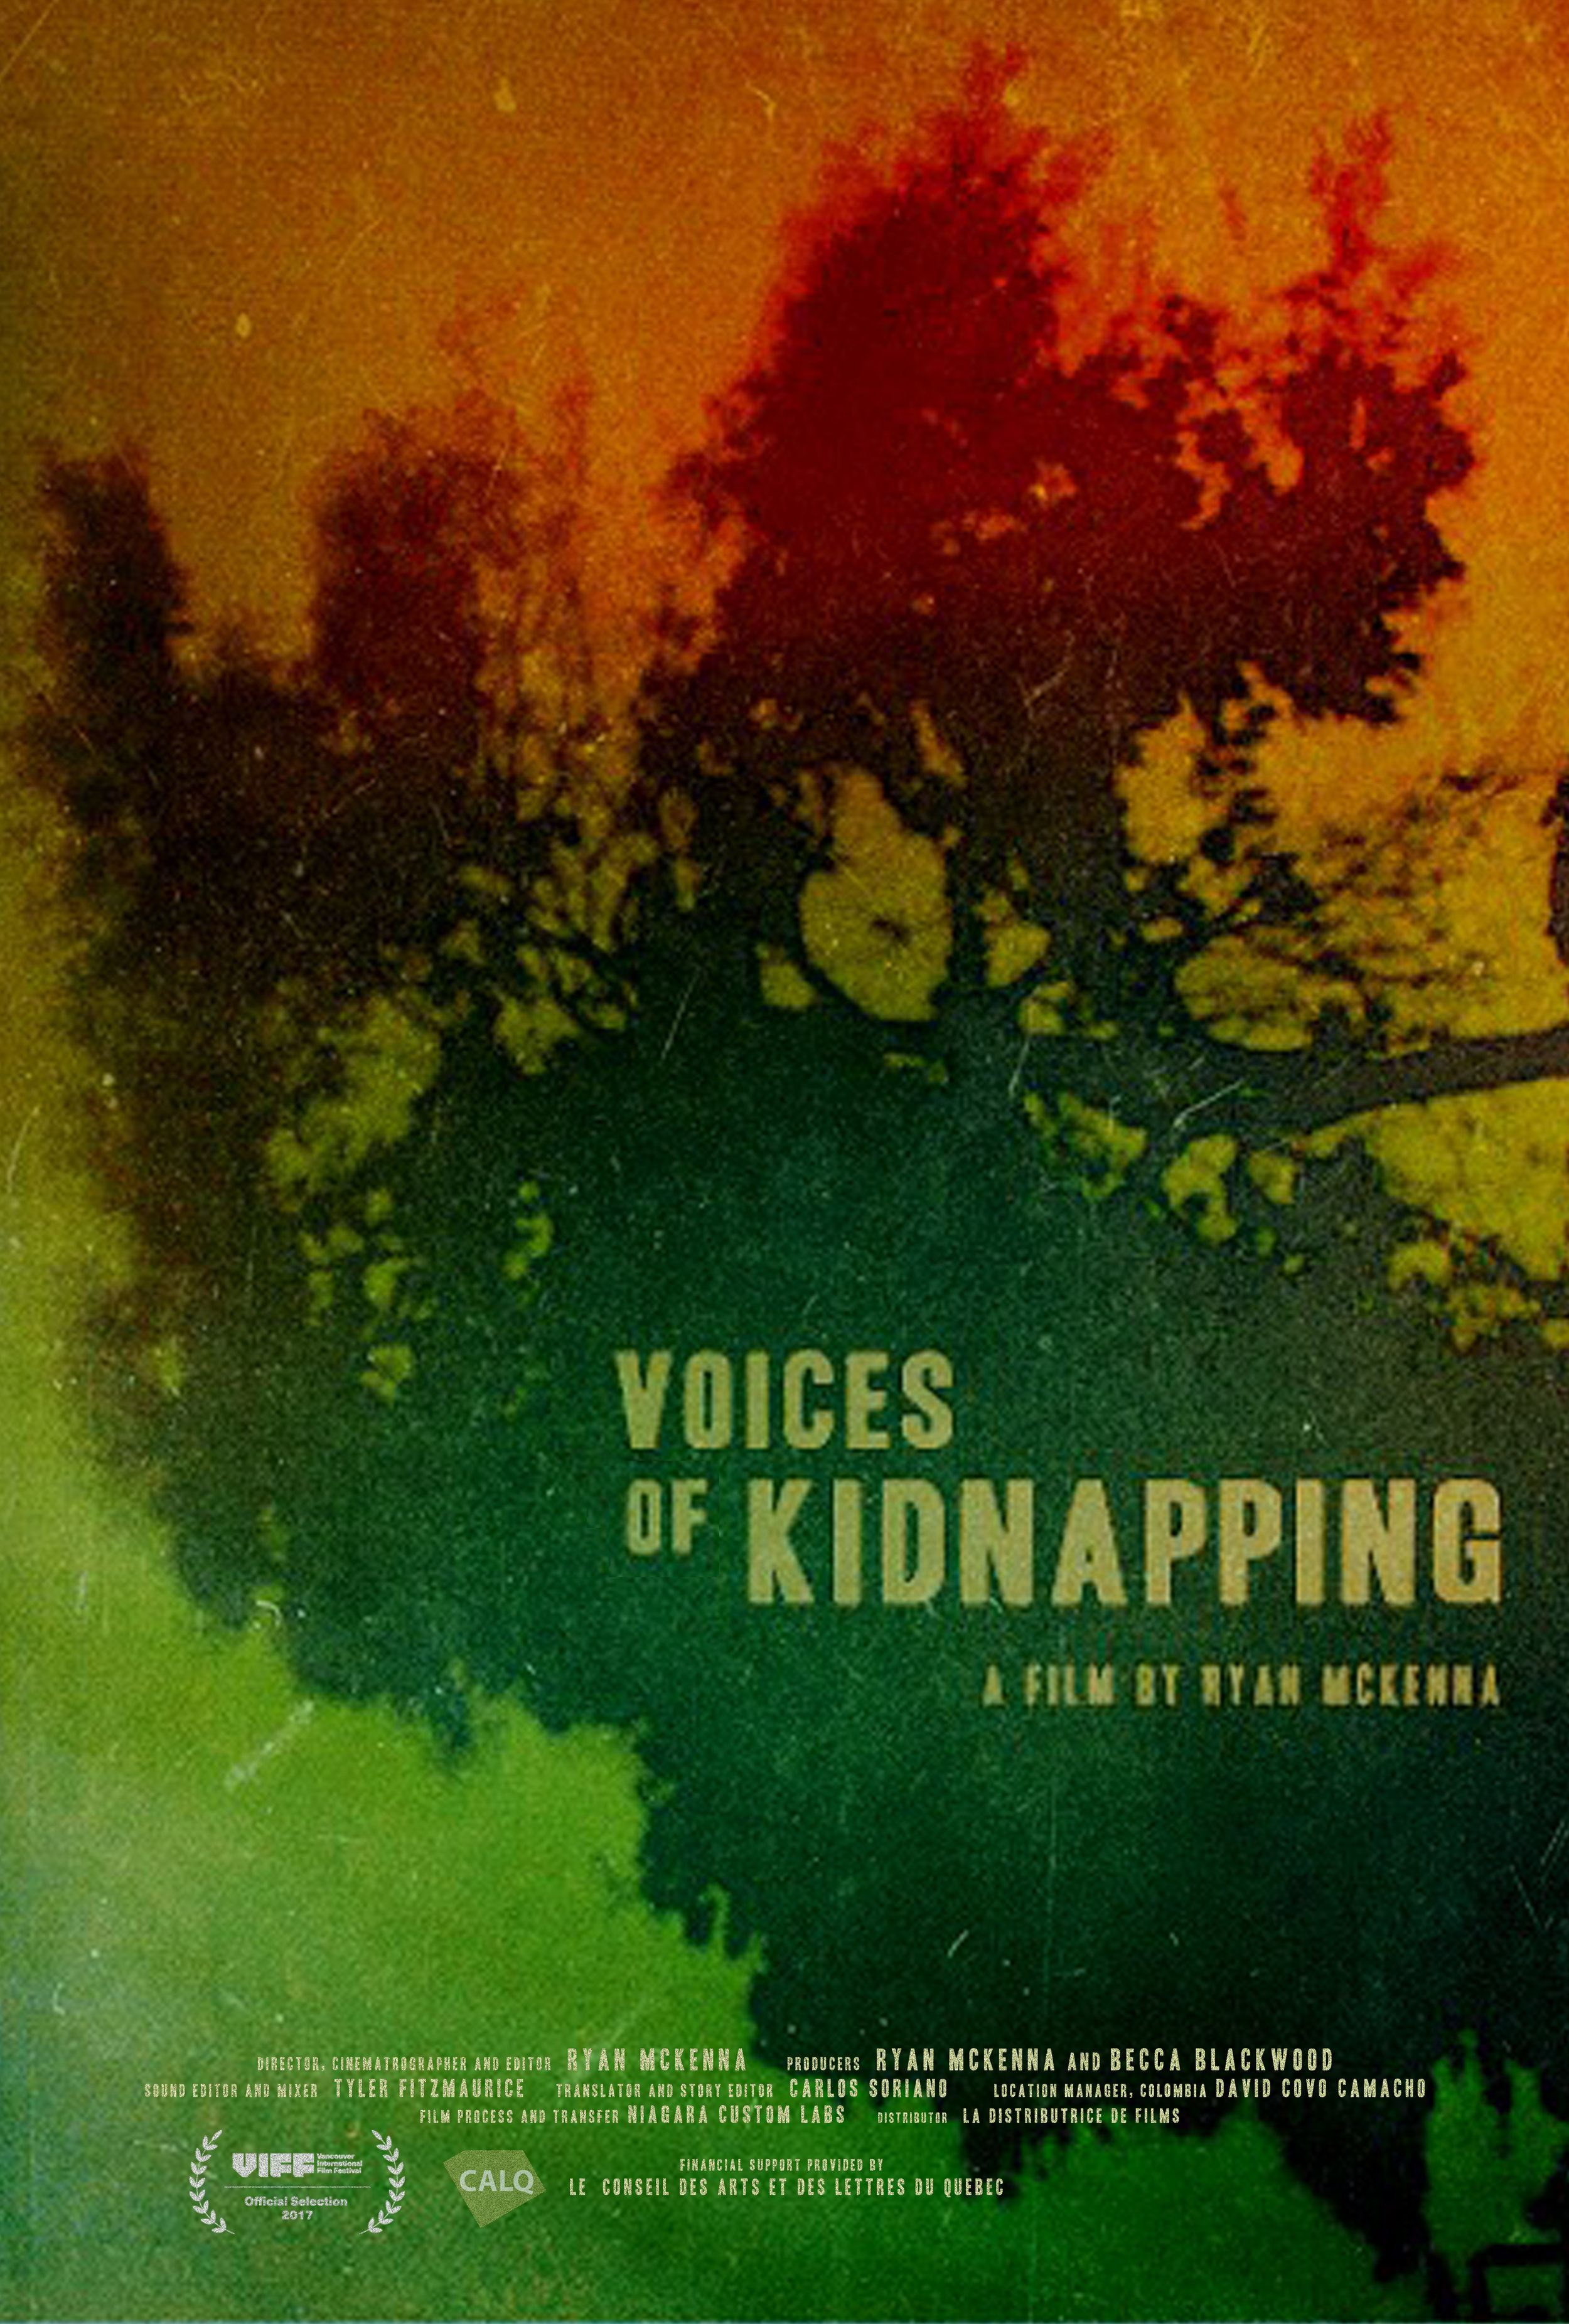 VoicesofKidnappingsmallPOSTER.jpg